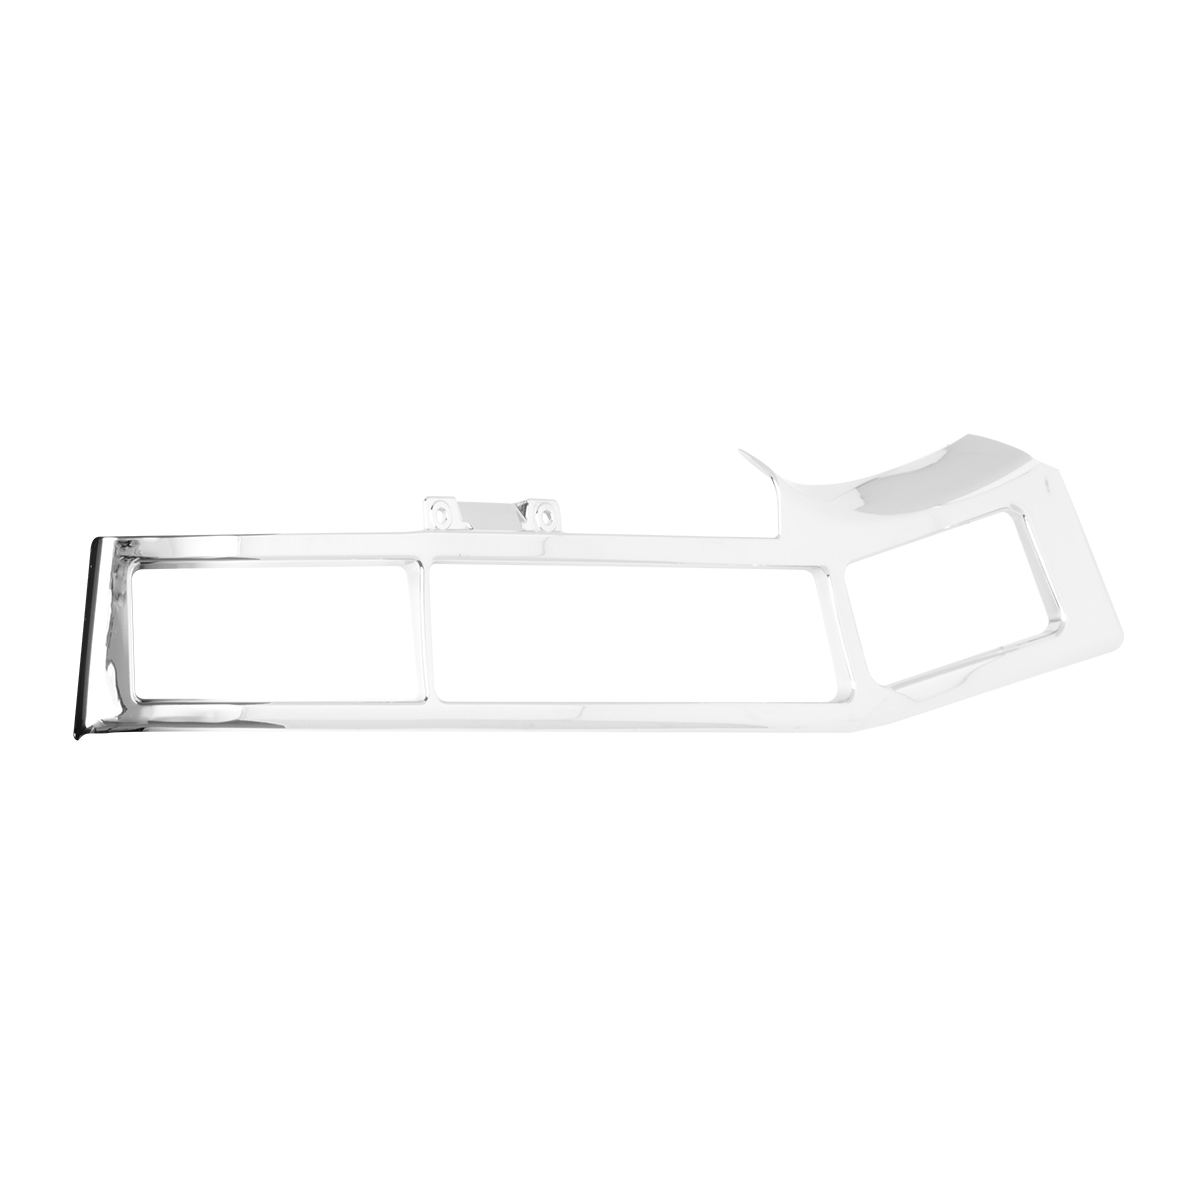 53981 Passenger Side Horizontal Dash Trim for Freightliner